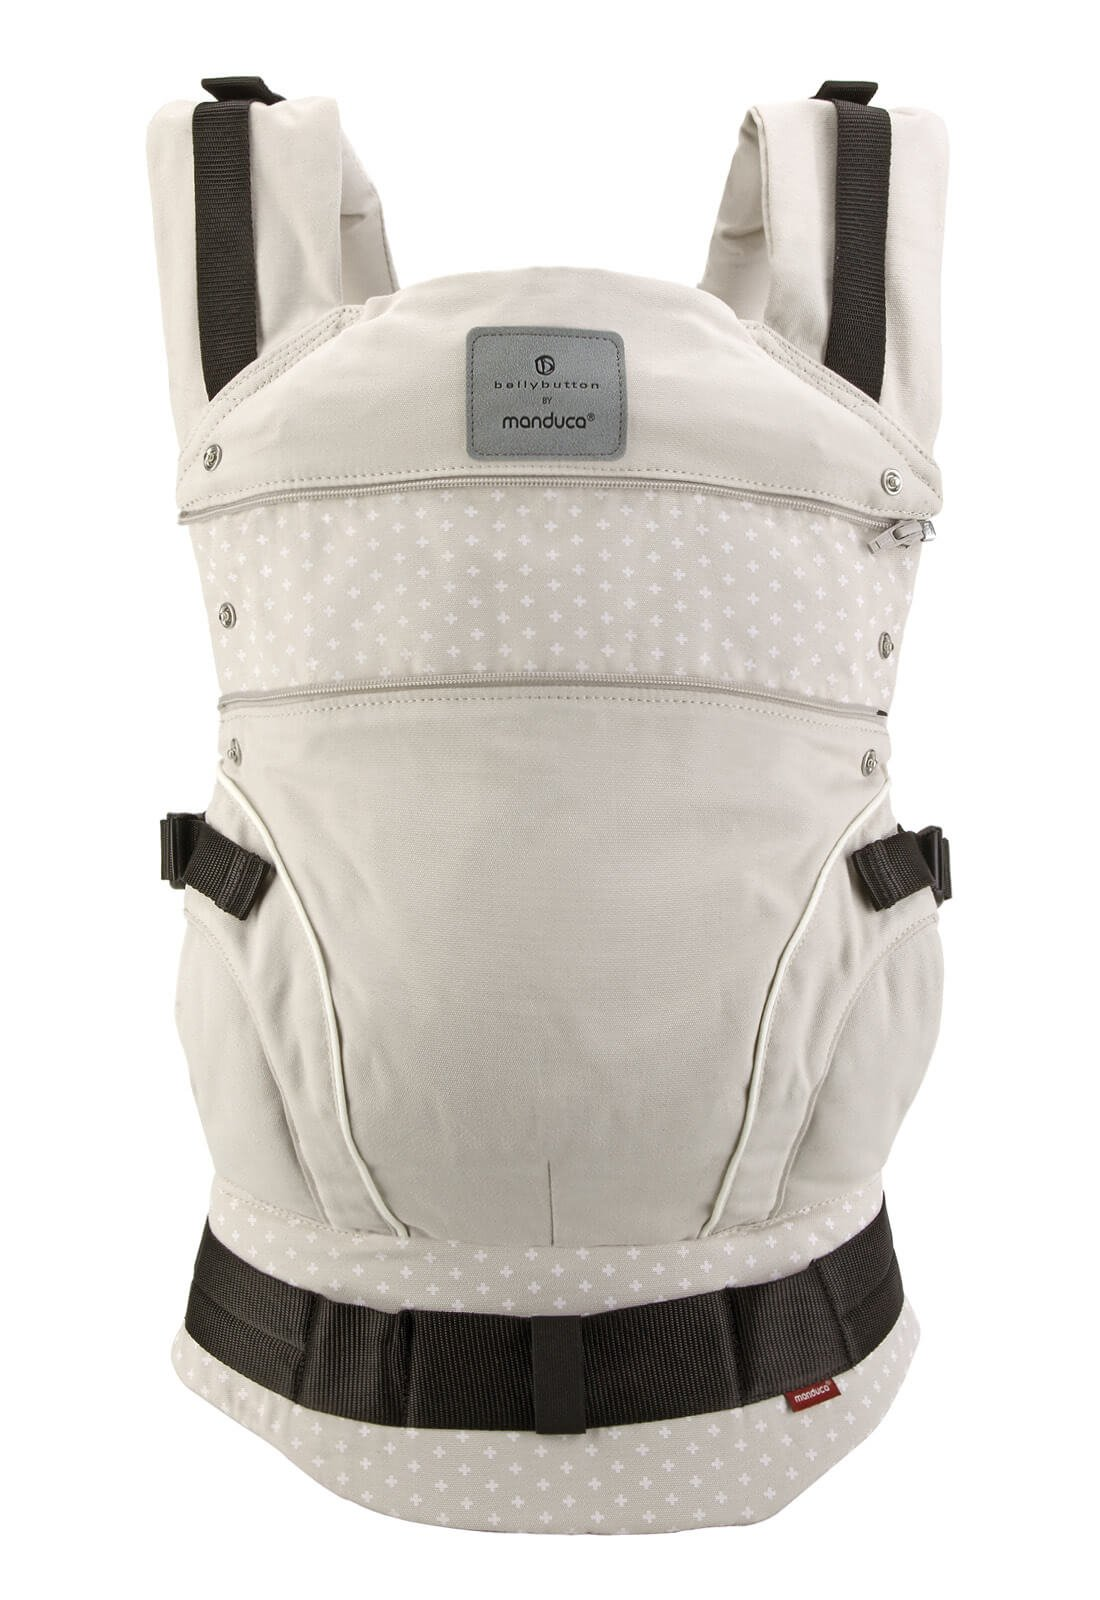 manduca First Baby Carrier > Bellybutton by manduca Edition, WildCrosses Sand < Child Carrier with Ergonomic Waist Belt & Patented Back Extension, Newborn to Toddler Manduca The anatomical shape of your belt makes all the weight to be on the hip, while the back, neck or shoulders of the person who takes padezcan The Manduca 222 Backpack allows you to position the child in front, behind or on the hip, always looking at the person who takes you The backpack also features a concealed hood and shades that can be to child's head when sleeping or to protect it from the sun and rain 3